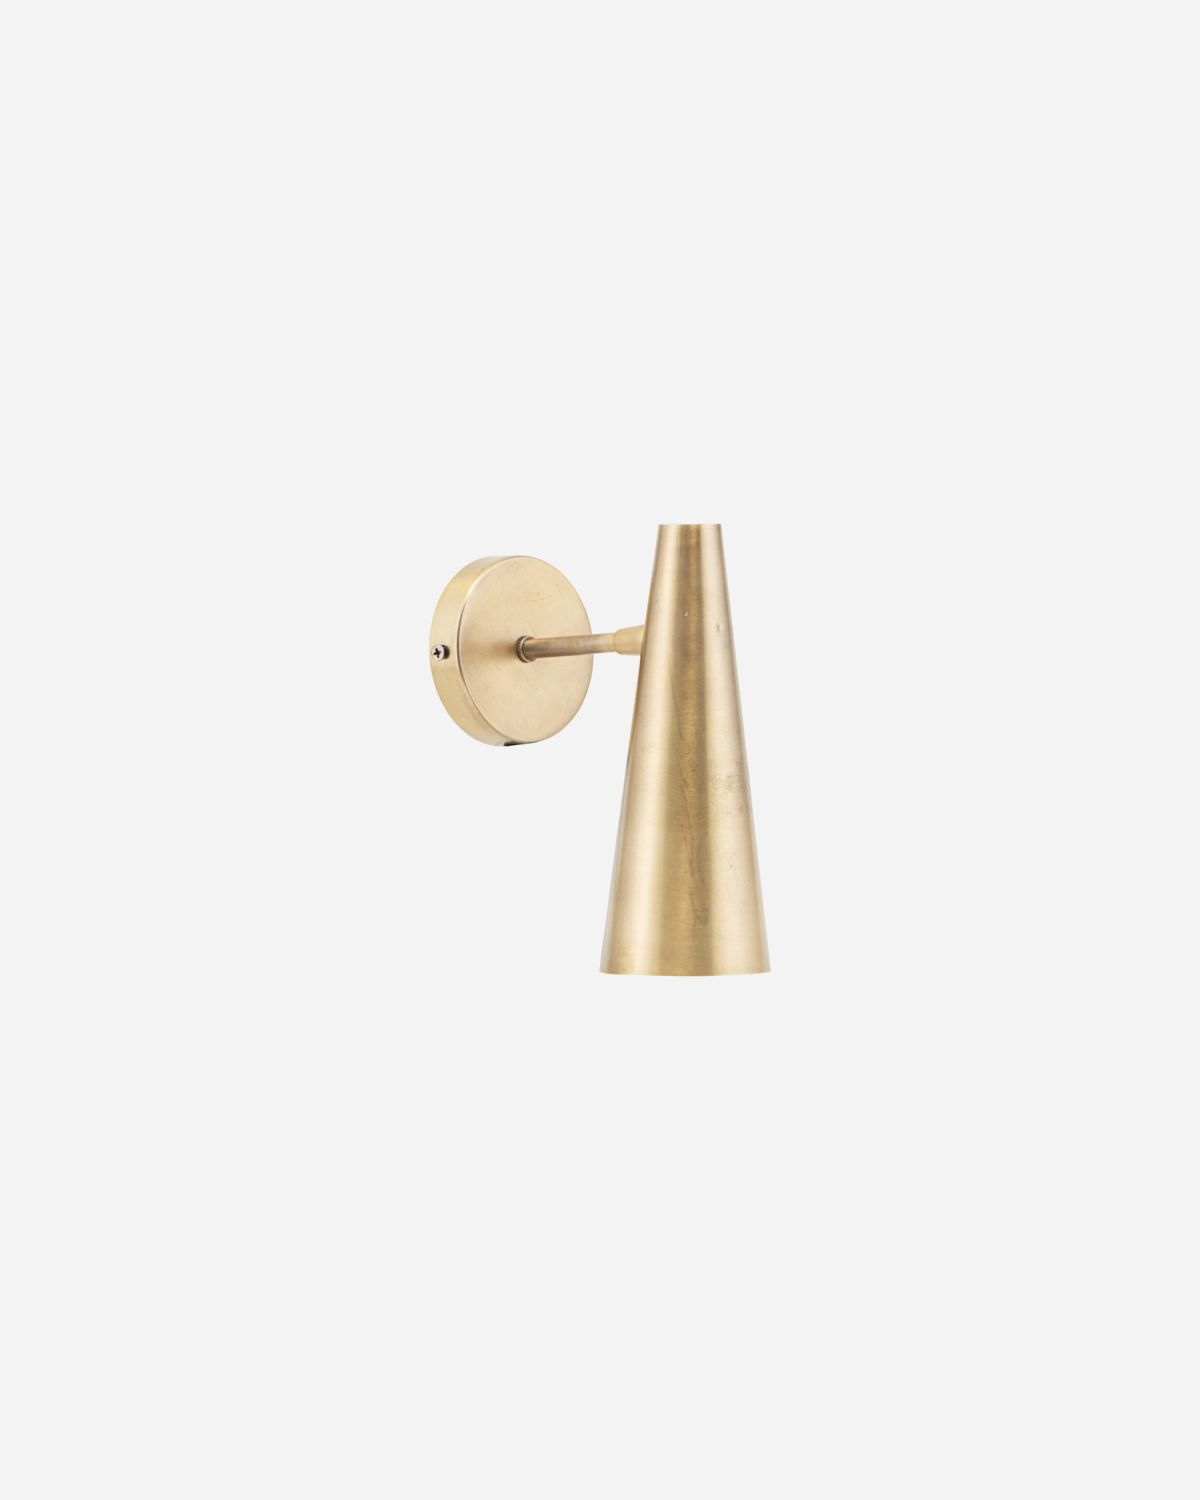 Wall lamp, Precise, Brass, E14, Max 6 W (LED), 2.5 m cable